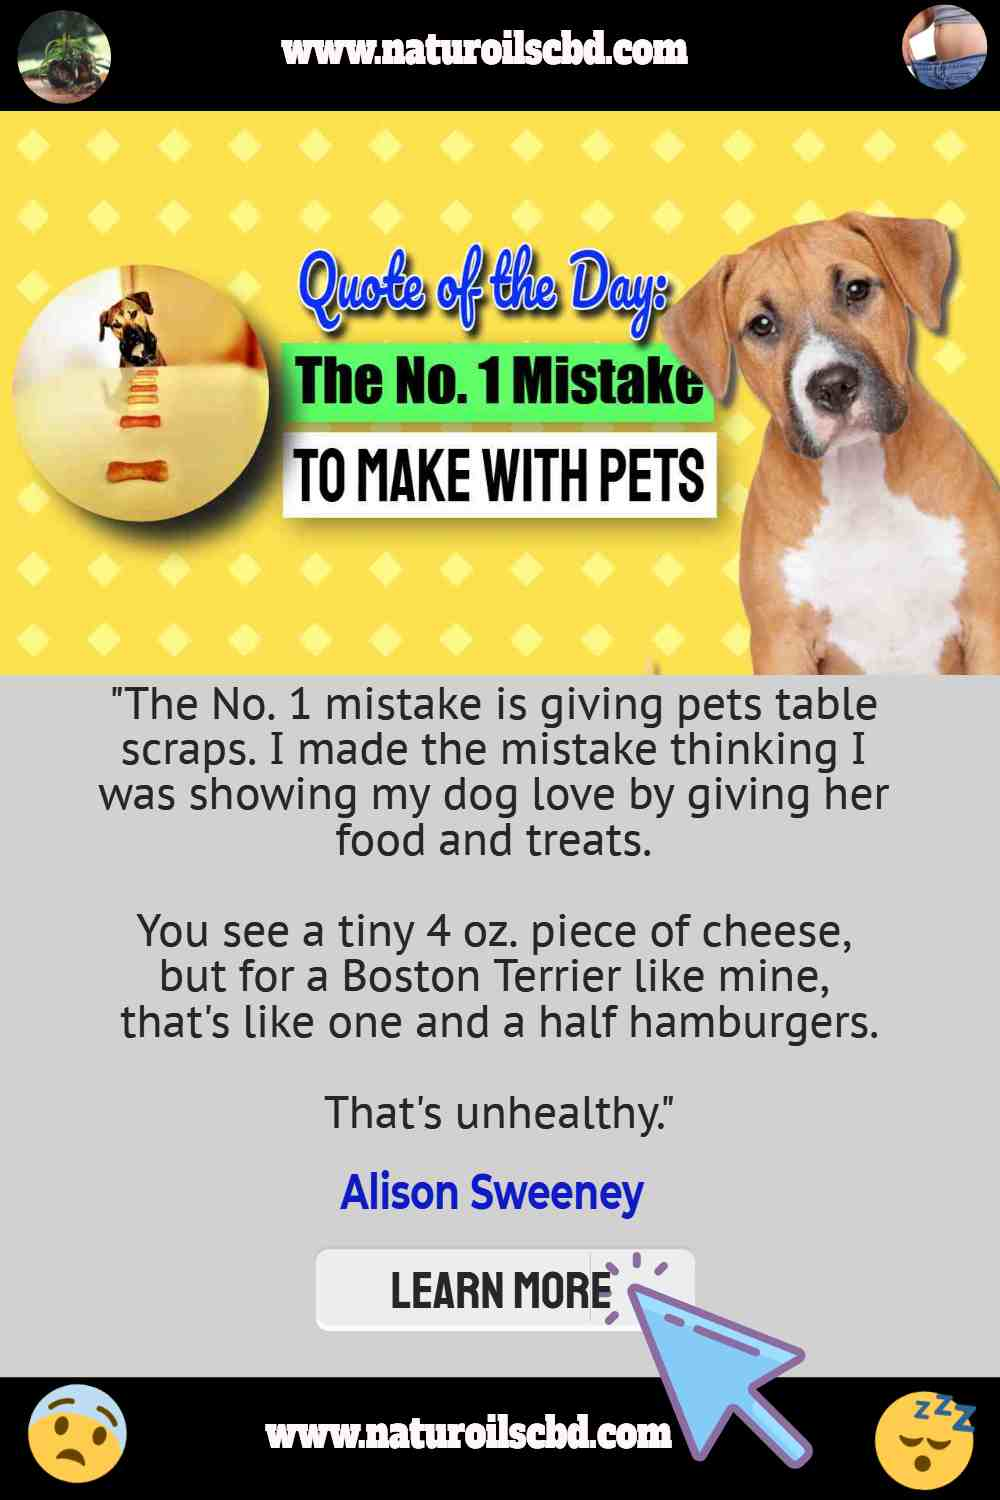 """Image text says: """"The No. 1 mistake is giving pets table scraps""""."""